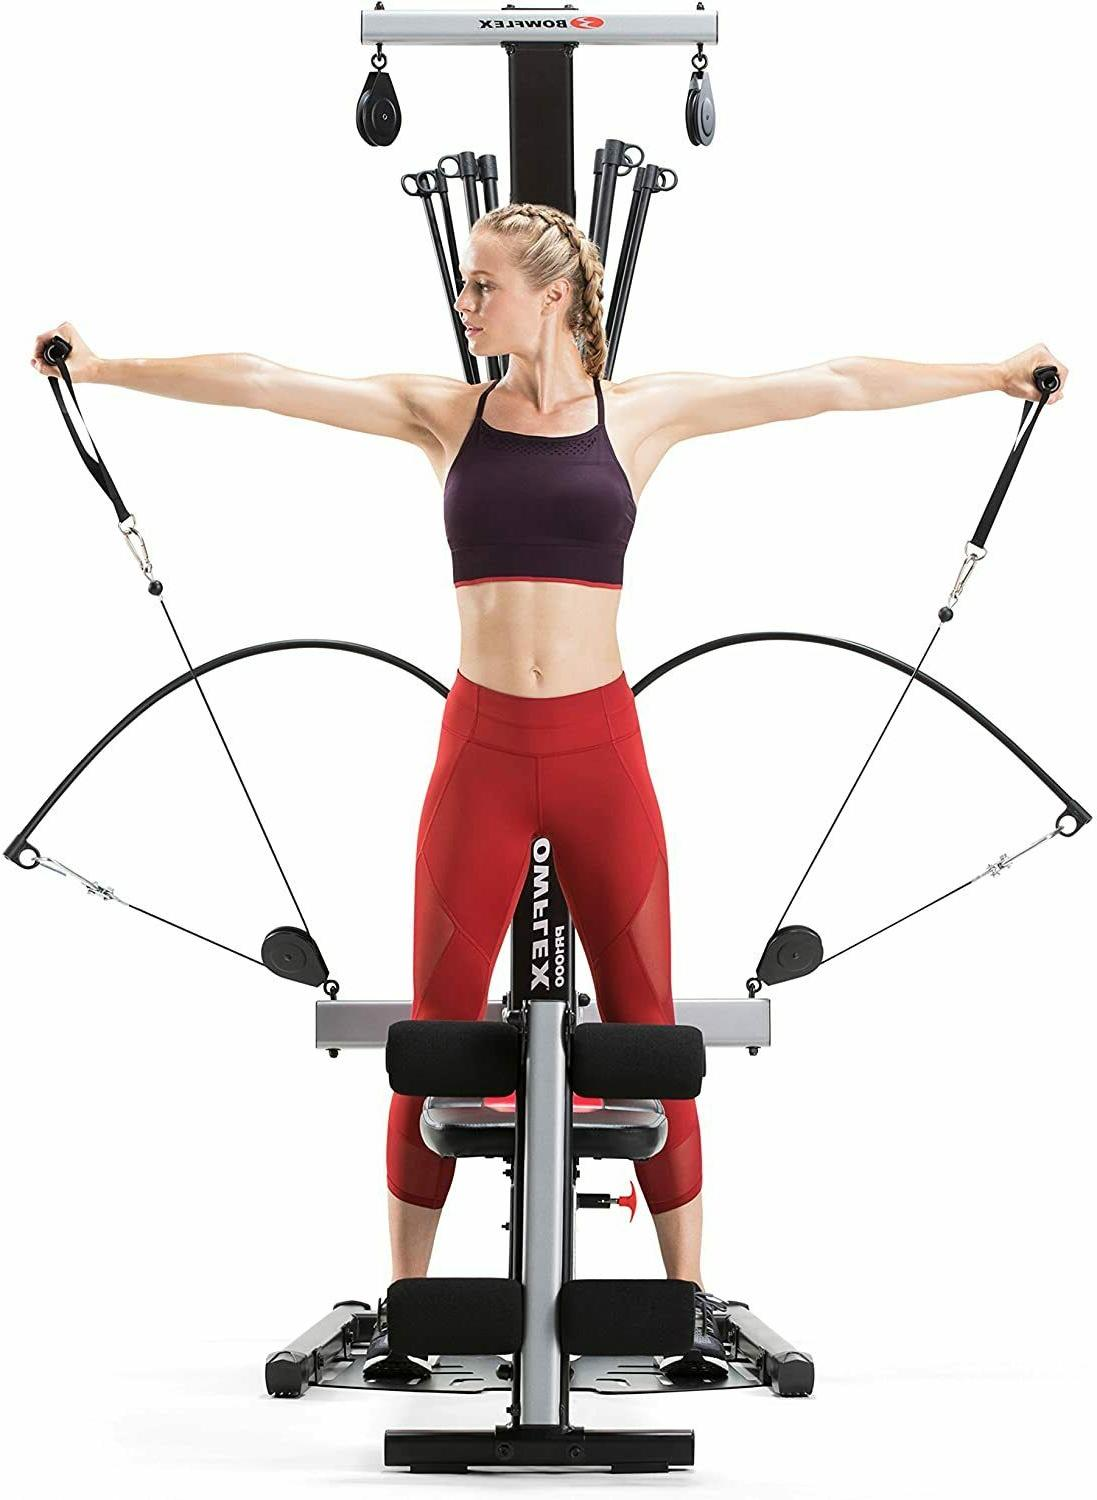 Bowflex Home PR1000 0ver exercises